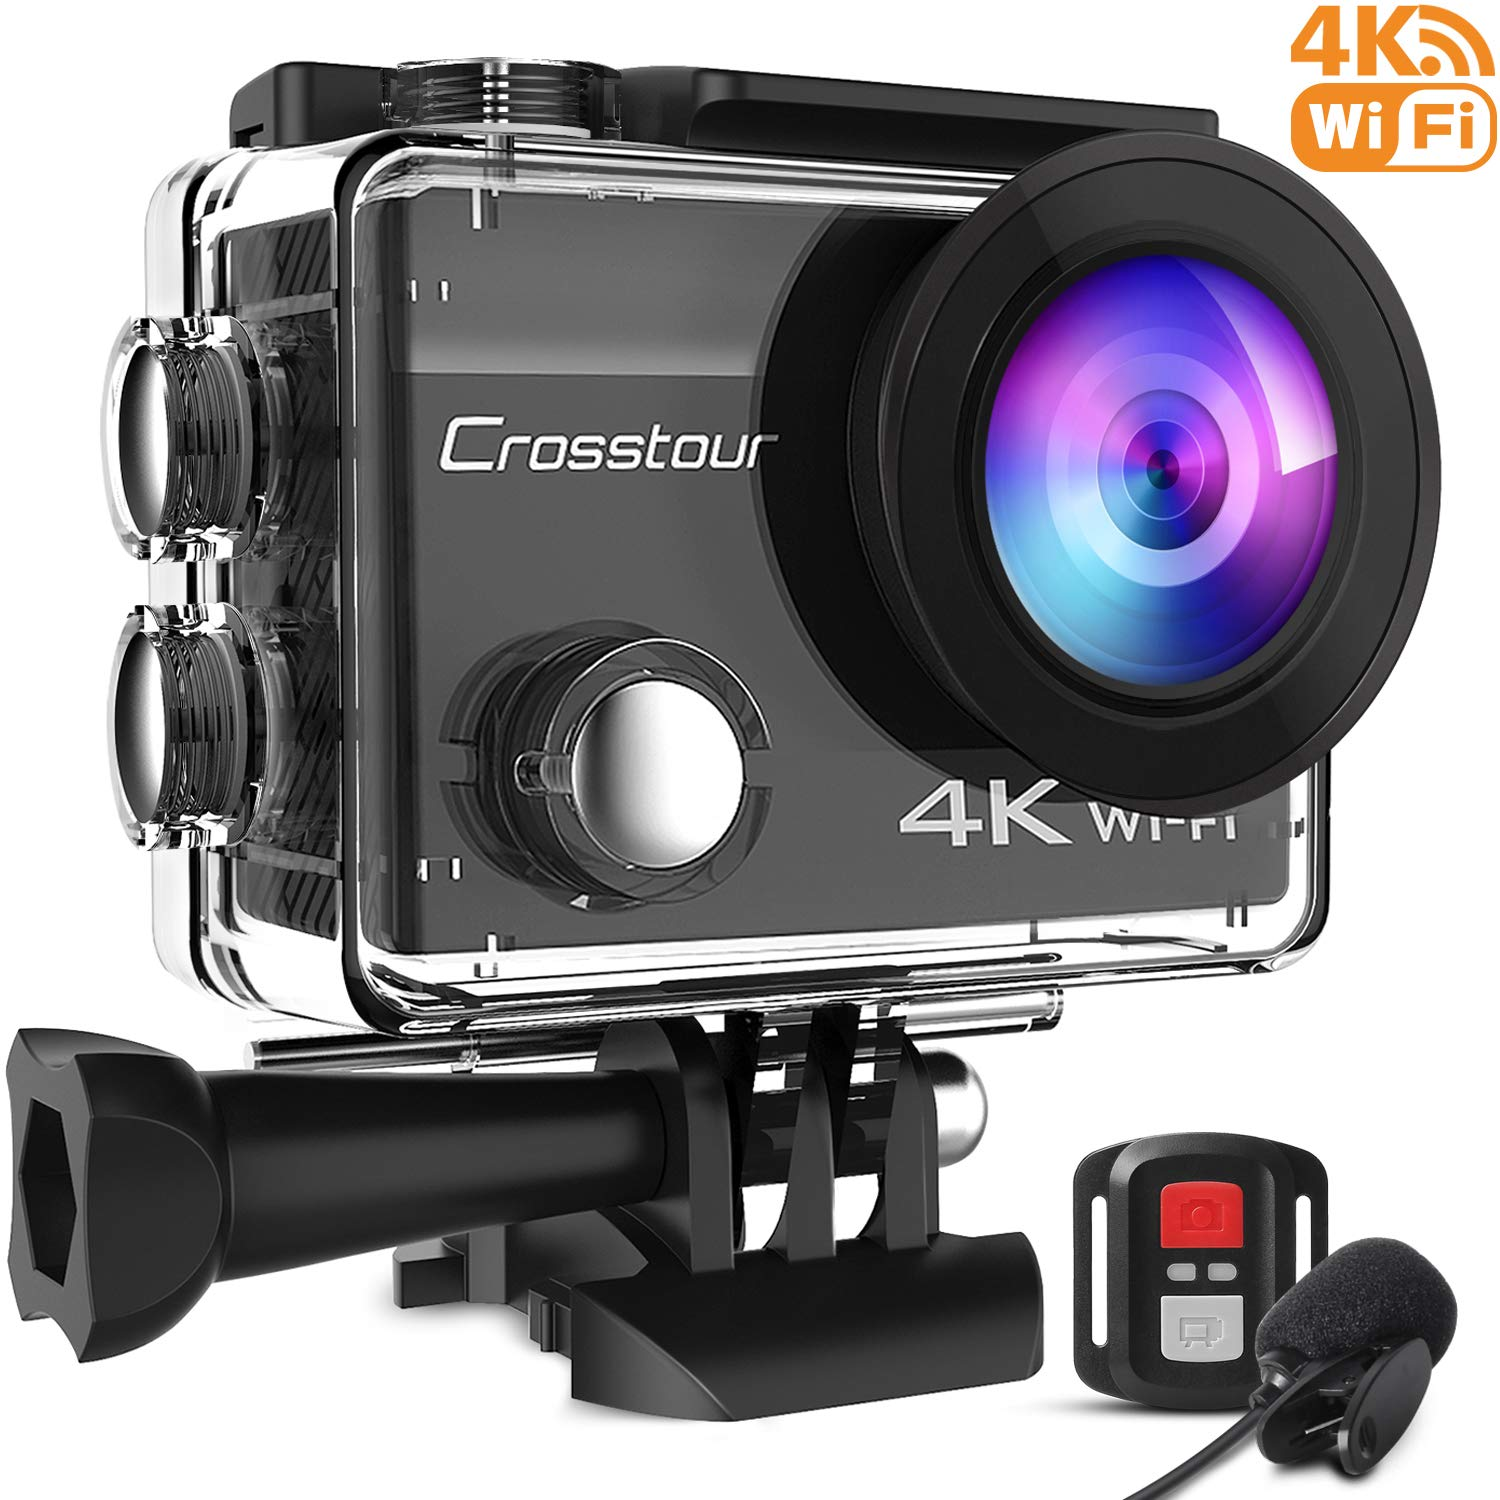 Crosstour 4K Action Camera 16MP WiFi Underwater Camera External Microphone Remote Control Anti-Shaking Time-Lapse with 2 Rechargeable Batteries and Accessories Sets for Diving and Snorkeling